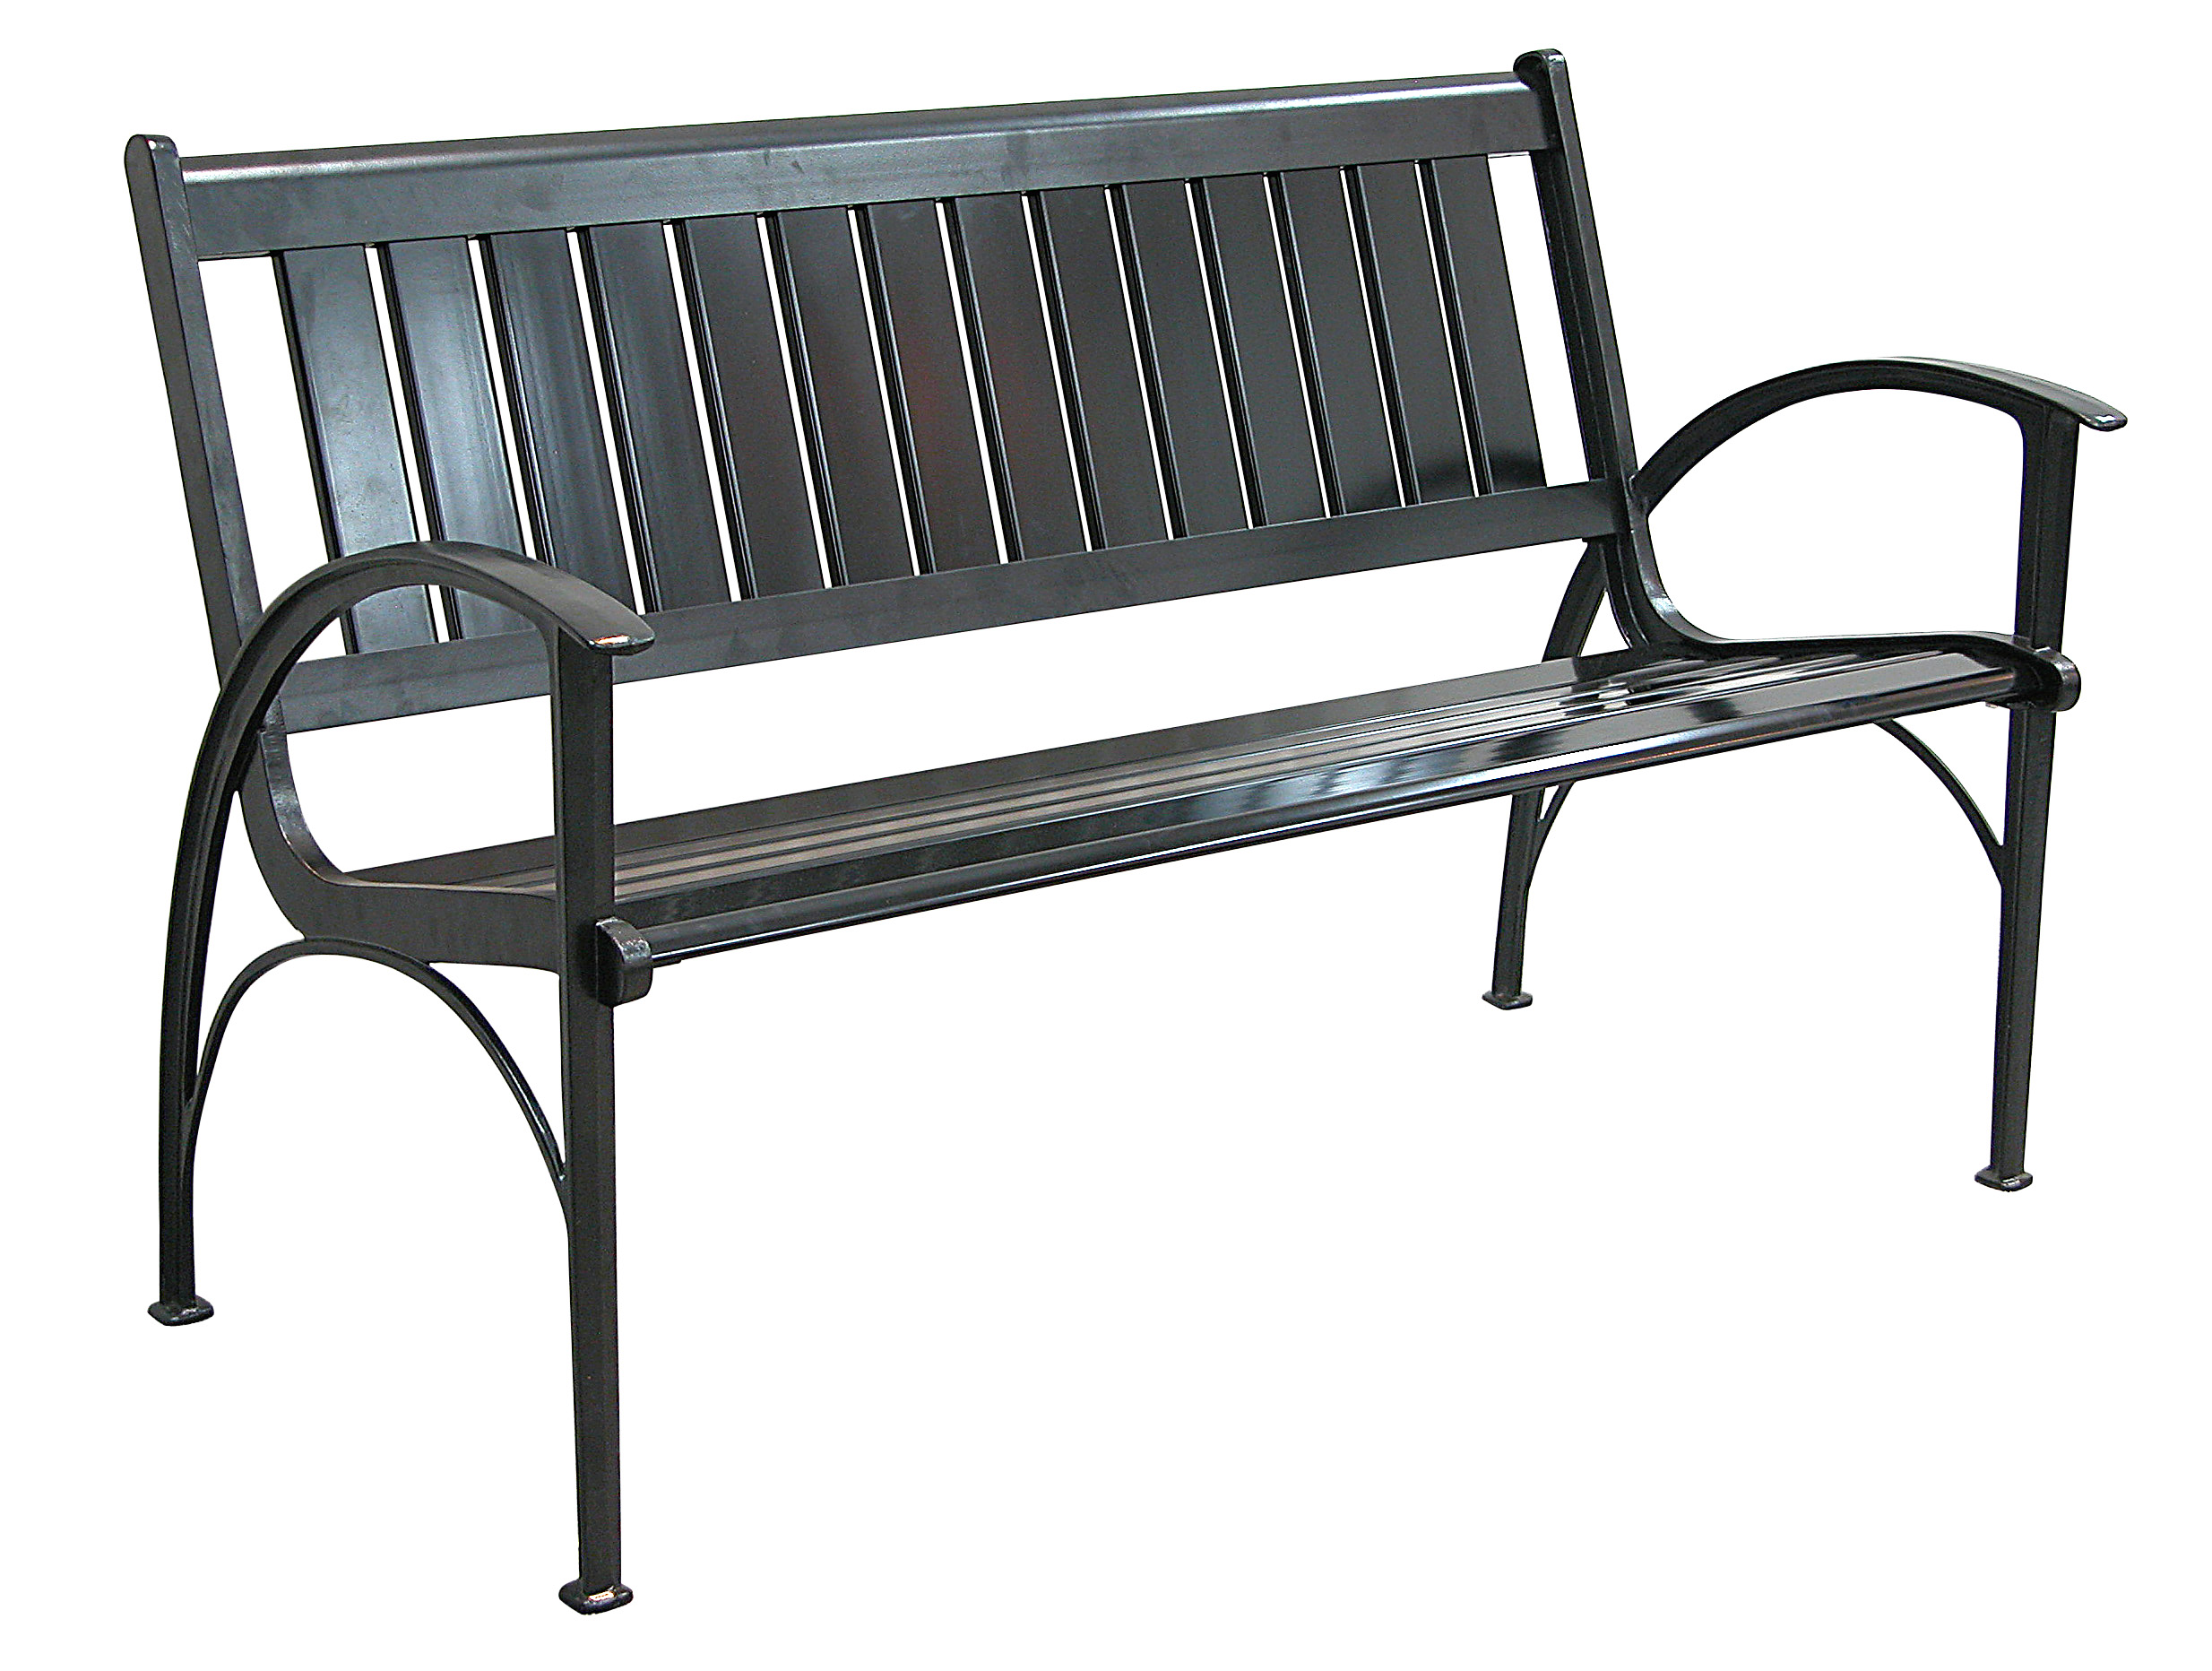 Patio furniture bench contemporary cast aluminum black for Outdoor furniture benches